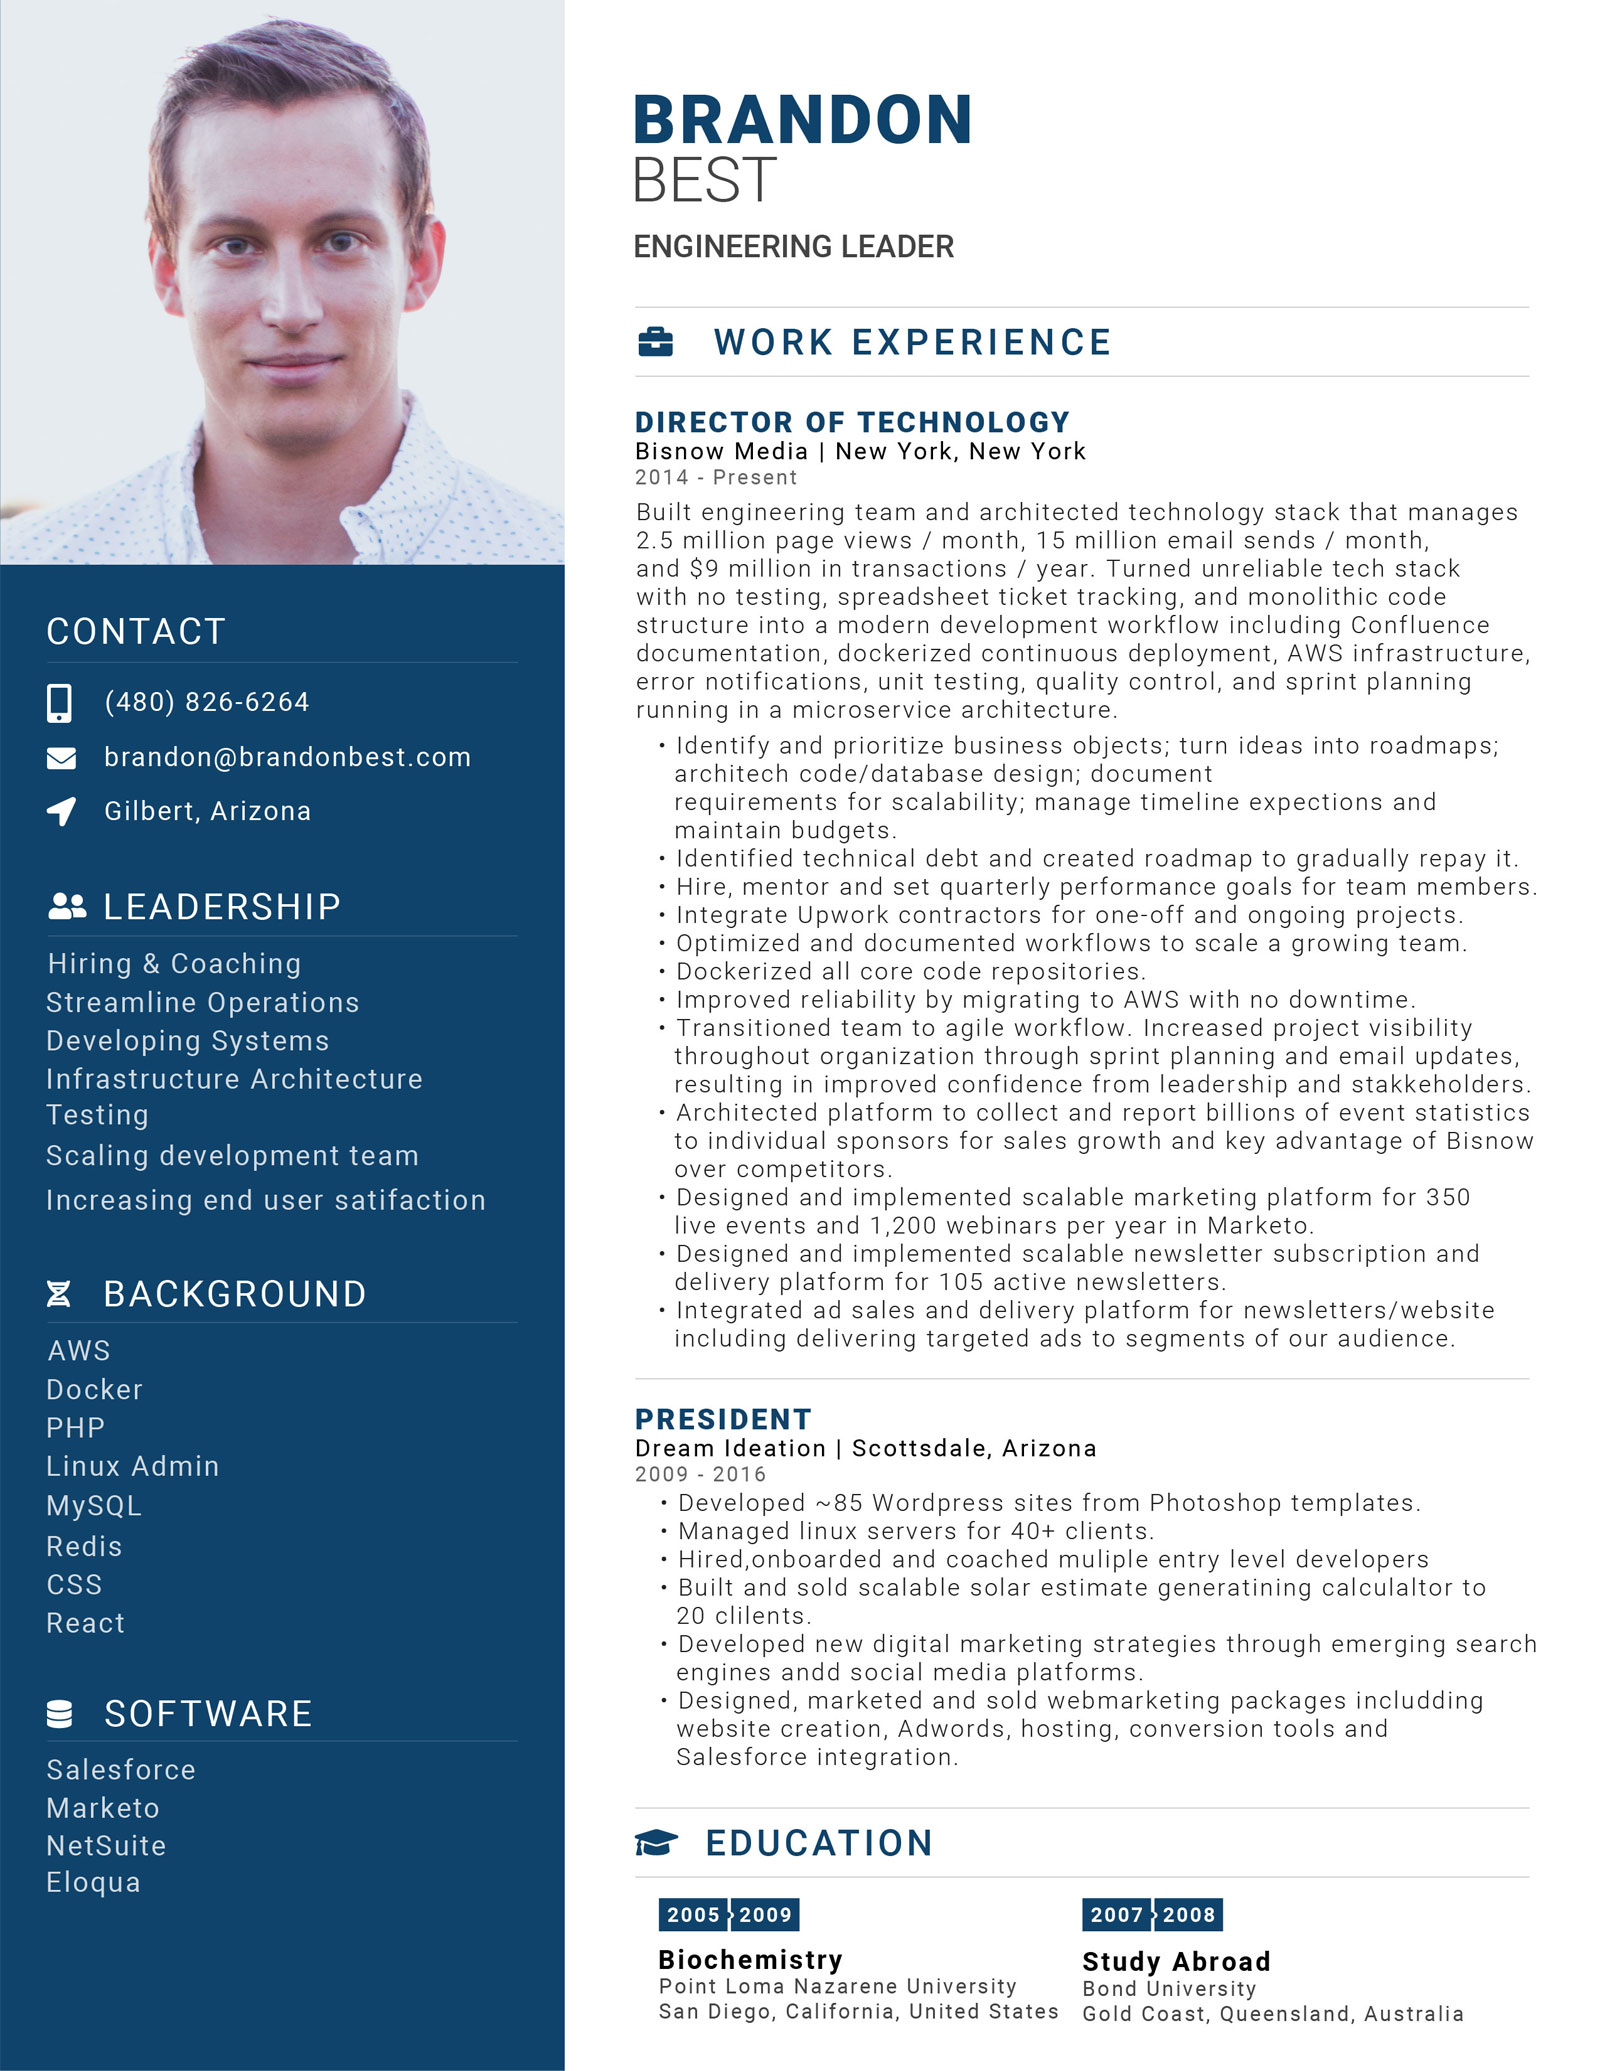 Brandon Best Resume